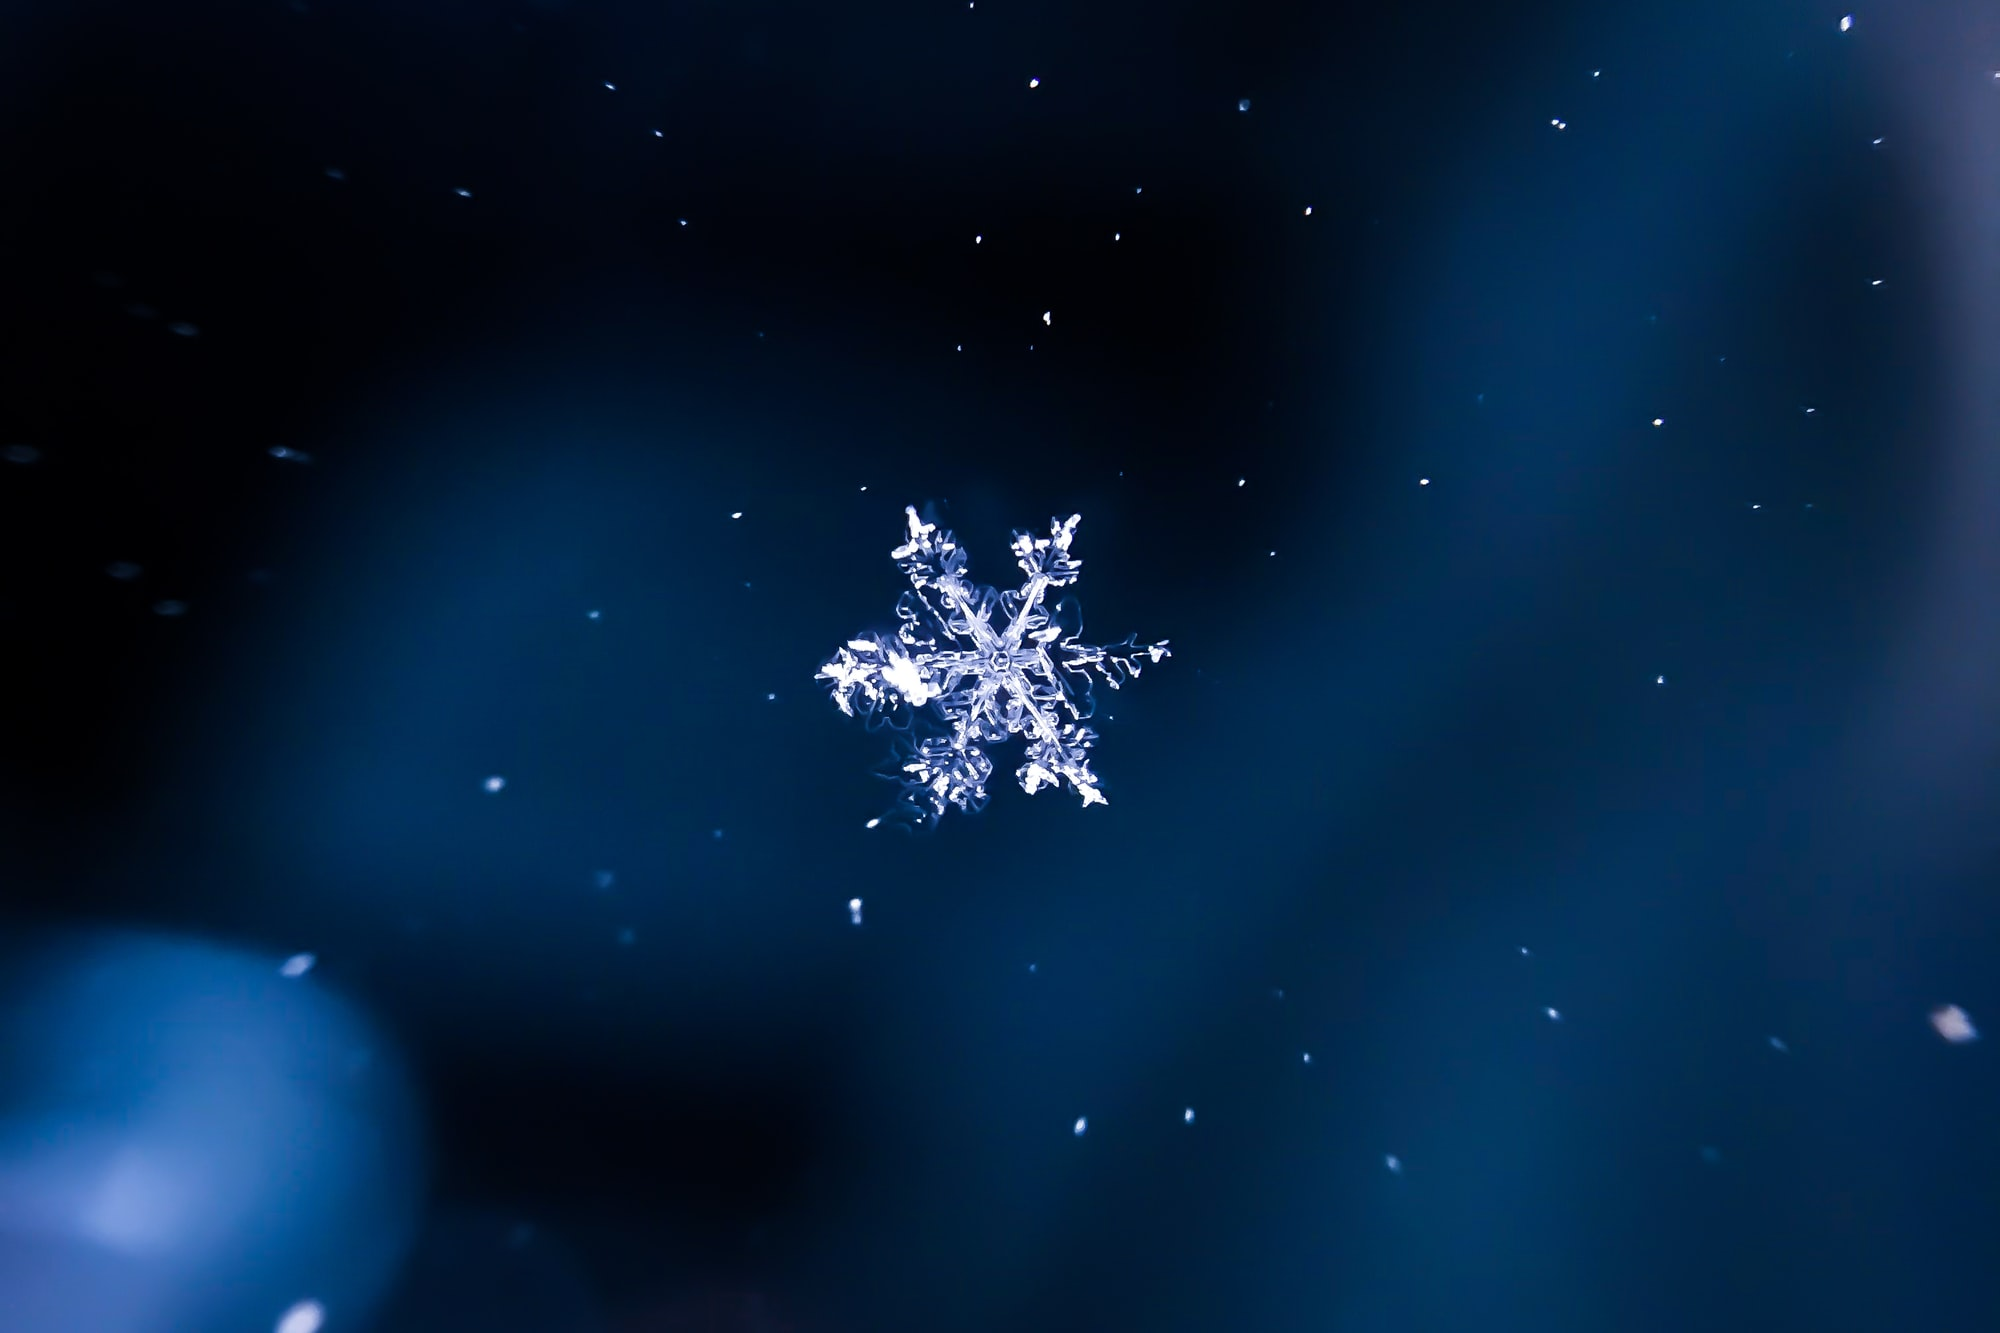 Create a Snowflake Warehouse and load data!